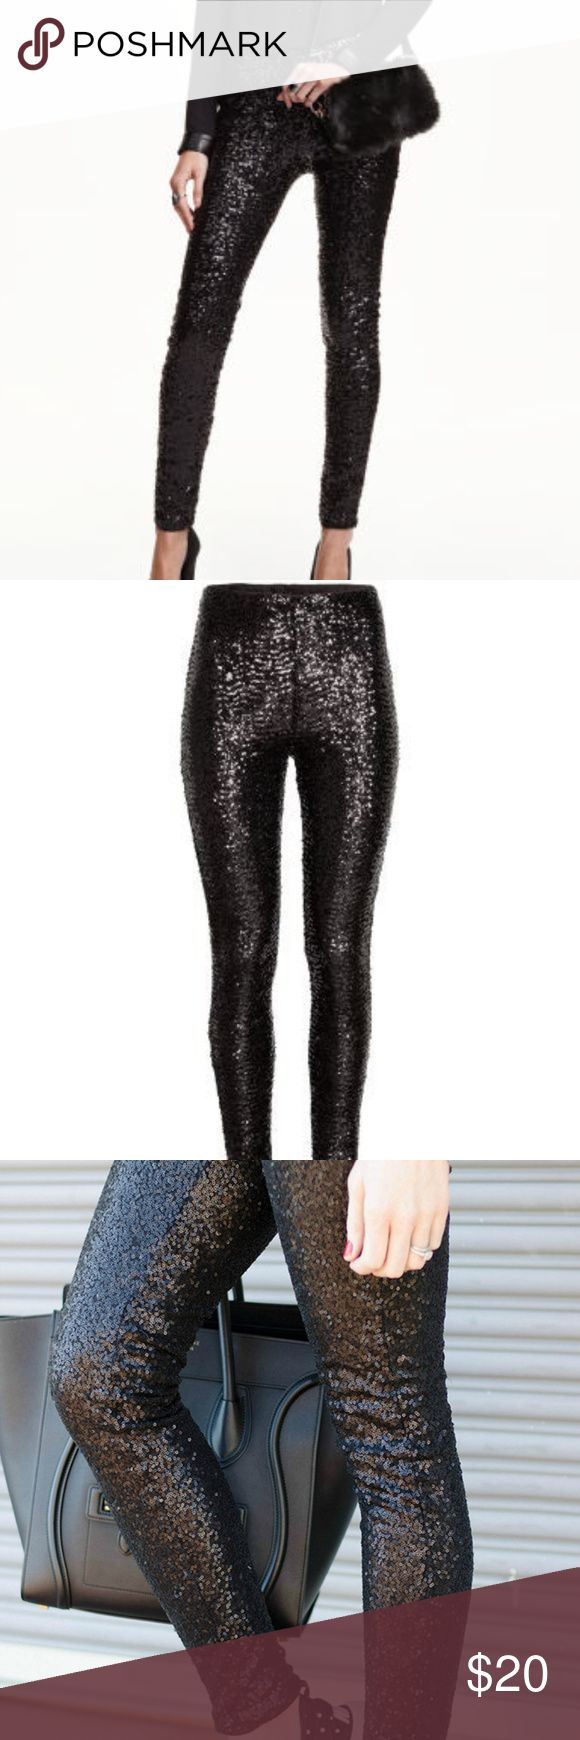 "Black Sequined Sequin Leggings Black sequined leggings.  Leggings in sequined mesh. High waist with concealed elastication. Jersey lining. Details  100% polyester. Machine wash cold   Size XS.  Waist laid flat measures approx. 12"" across. Un-stretched. Divided Pants Leggings"